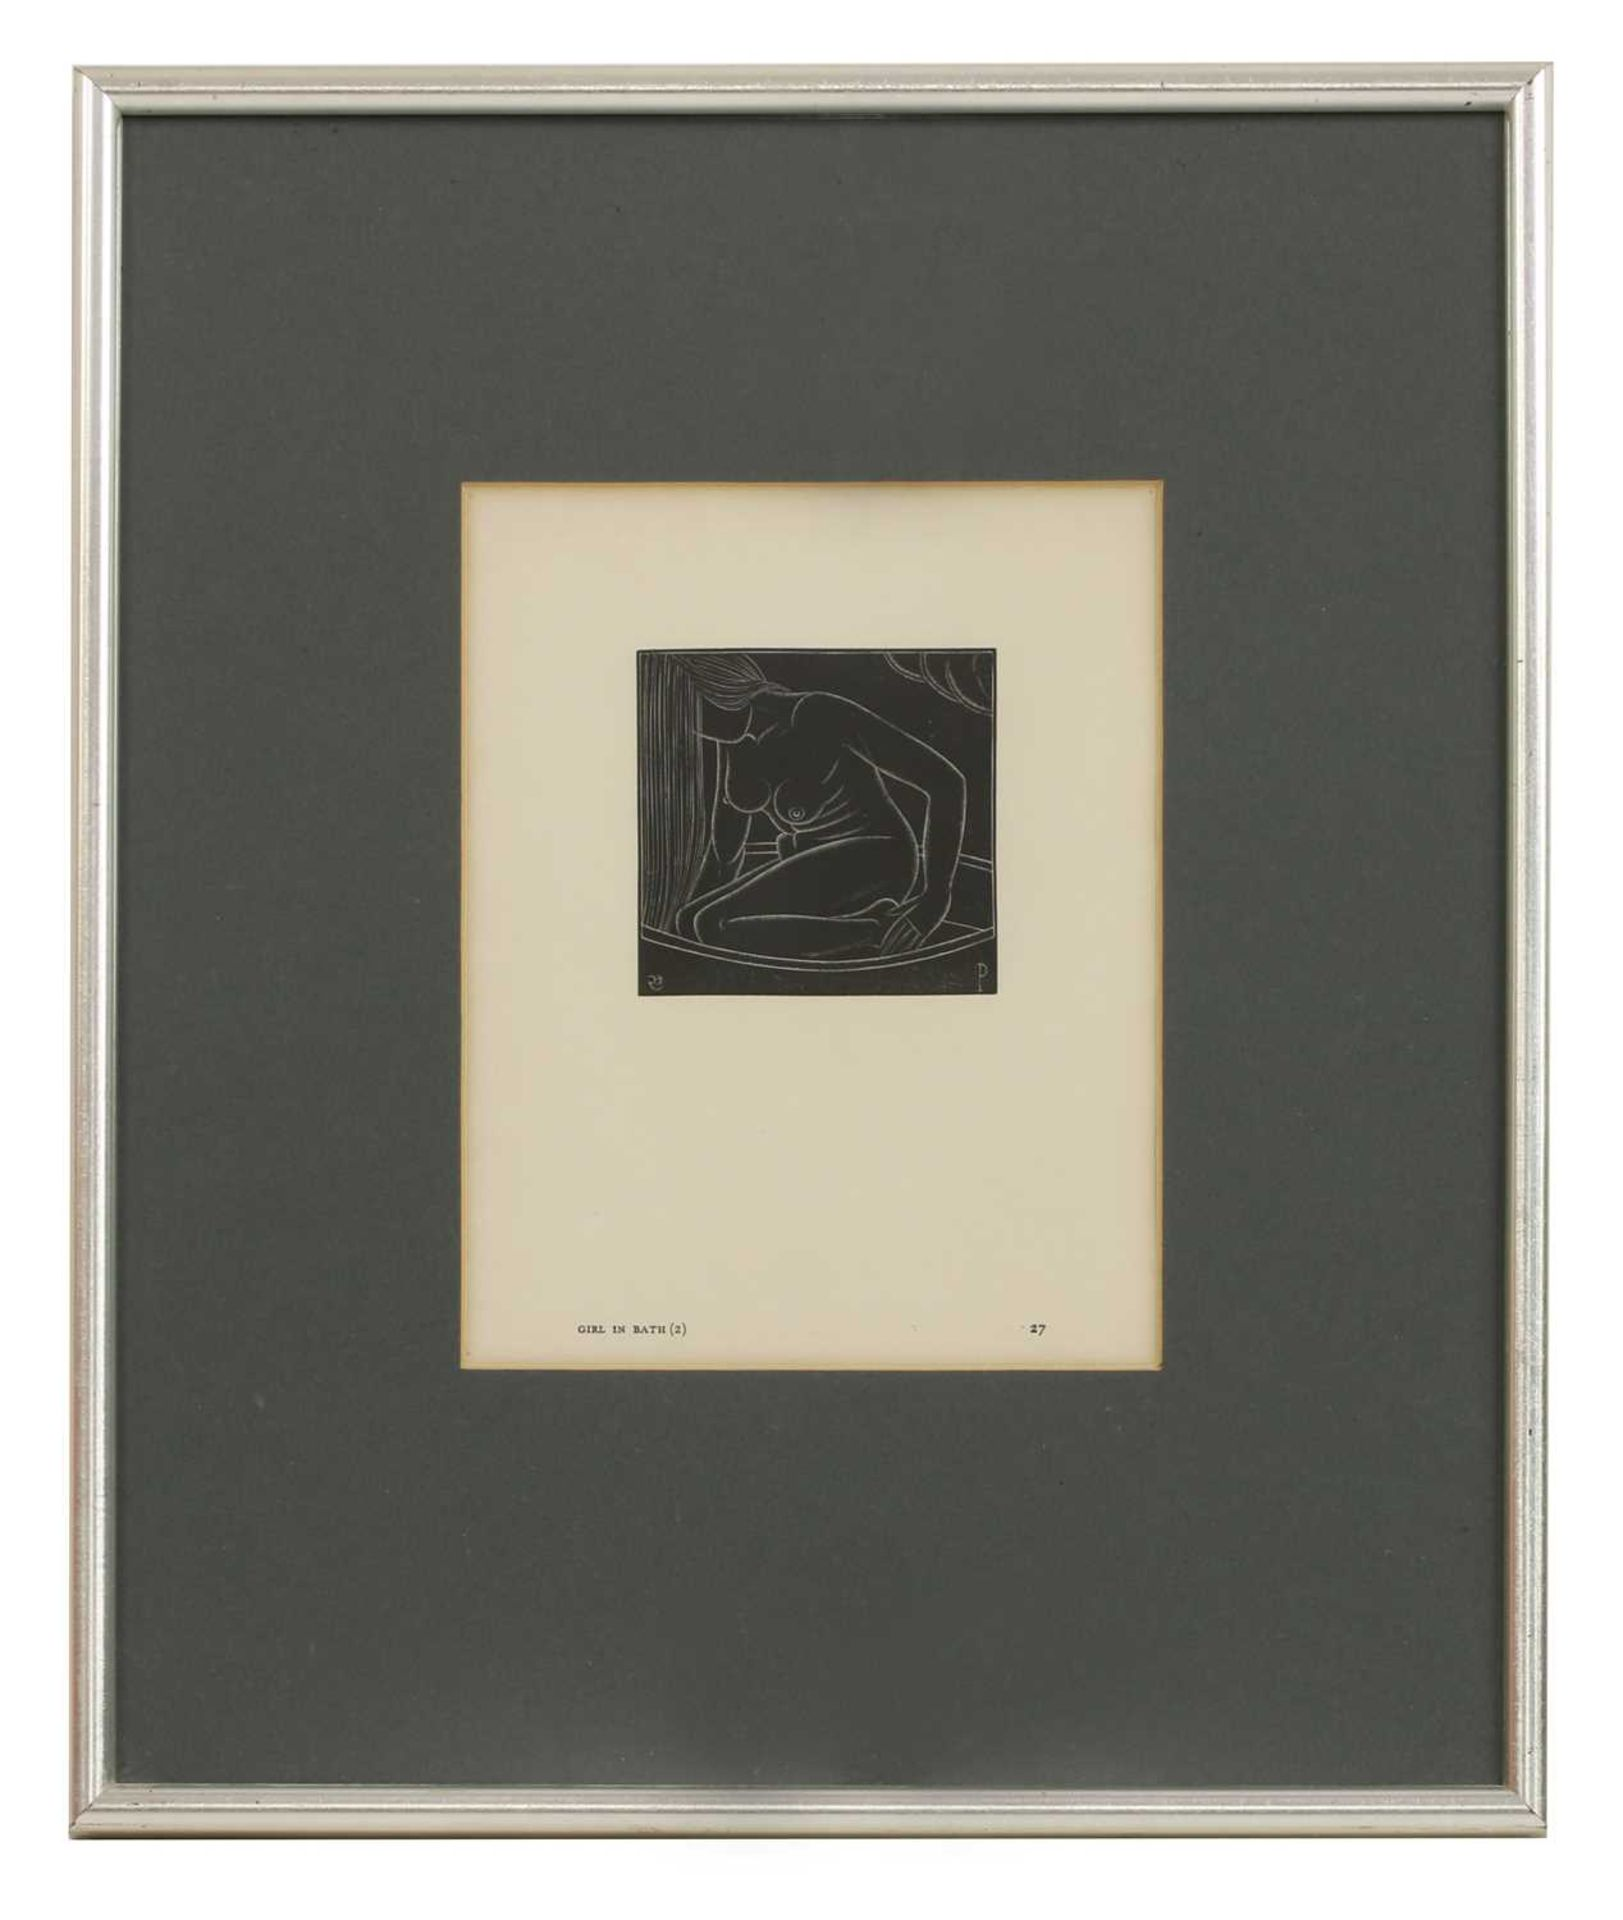 Eric Gill (1882-1940) - Image 2 of 4